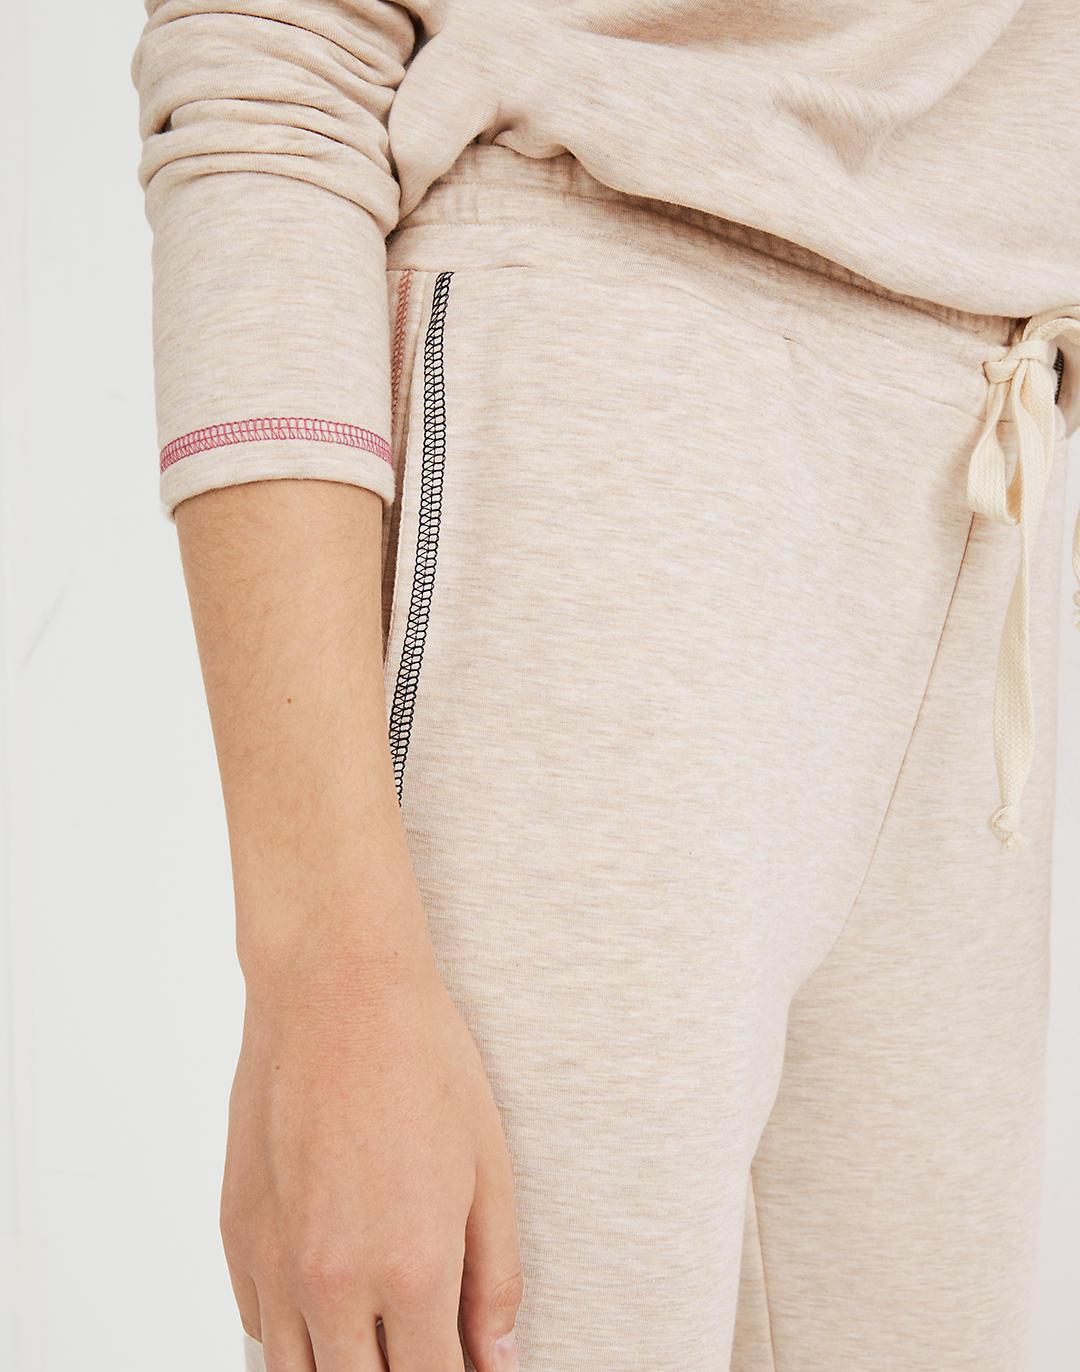 MWL Superbrushed Contrast-Stitched Easygoing Sweatpants 3